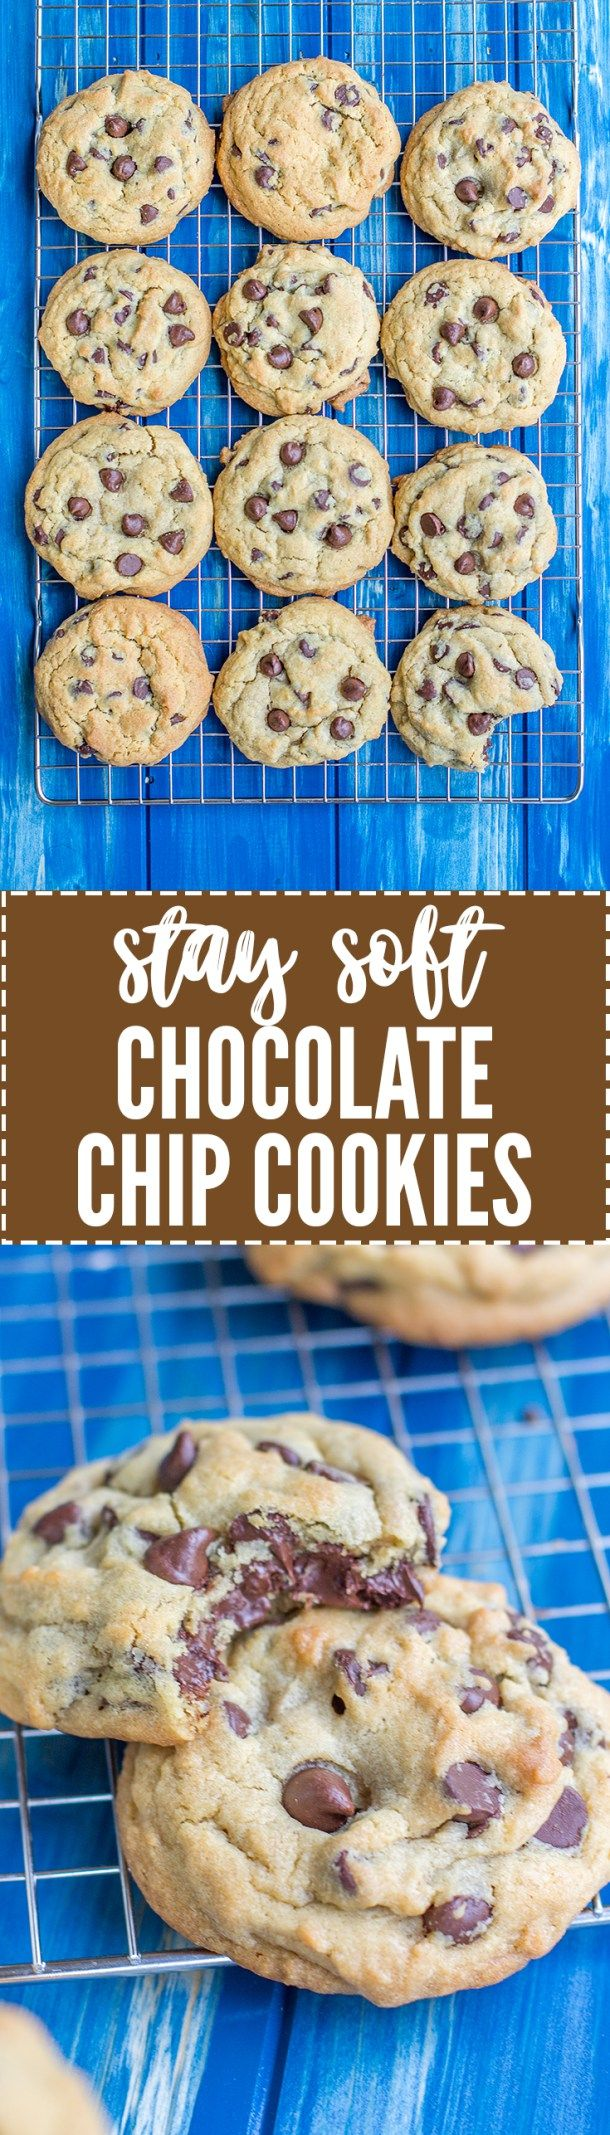 Stay Soft Chocolate Chip Cookies Recipe Soft Chocolate Chip Cookies Chip Cookies Chocolate Chip Cookies